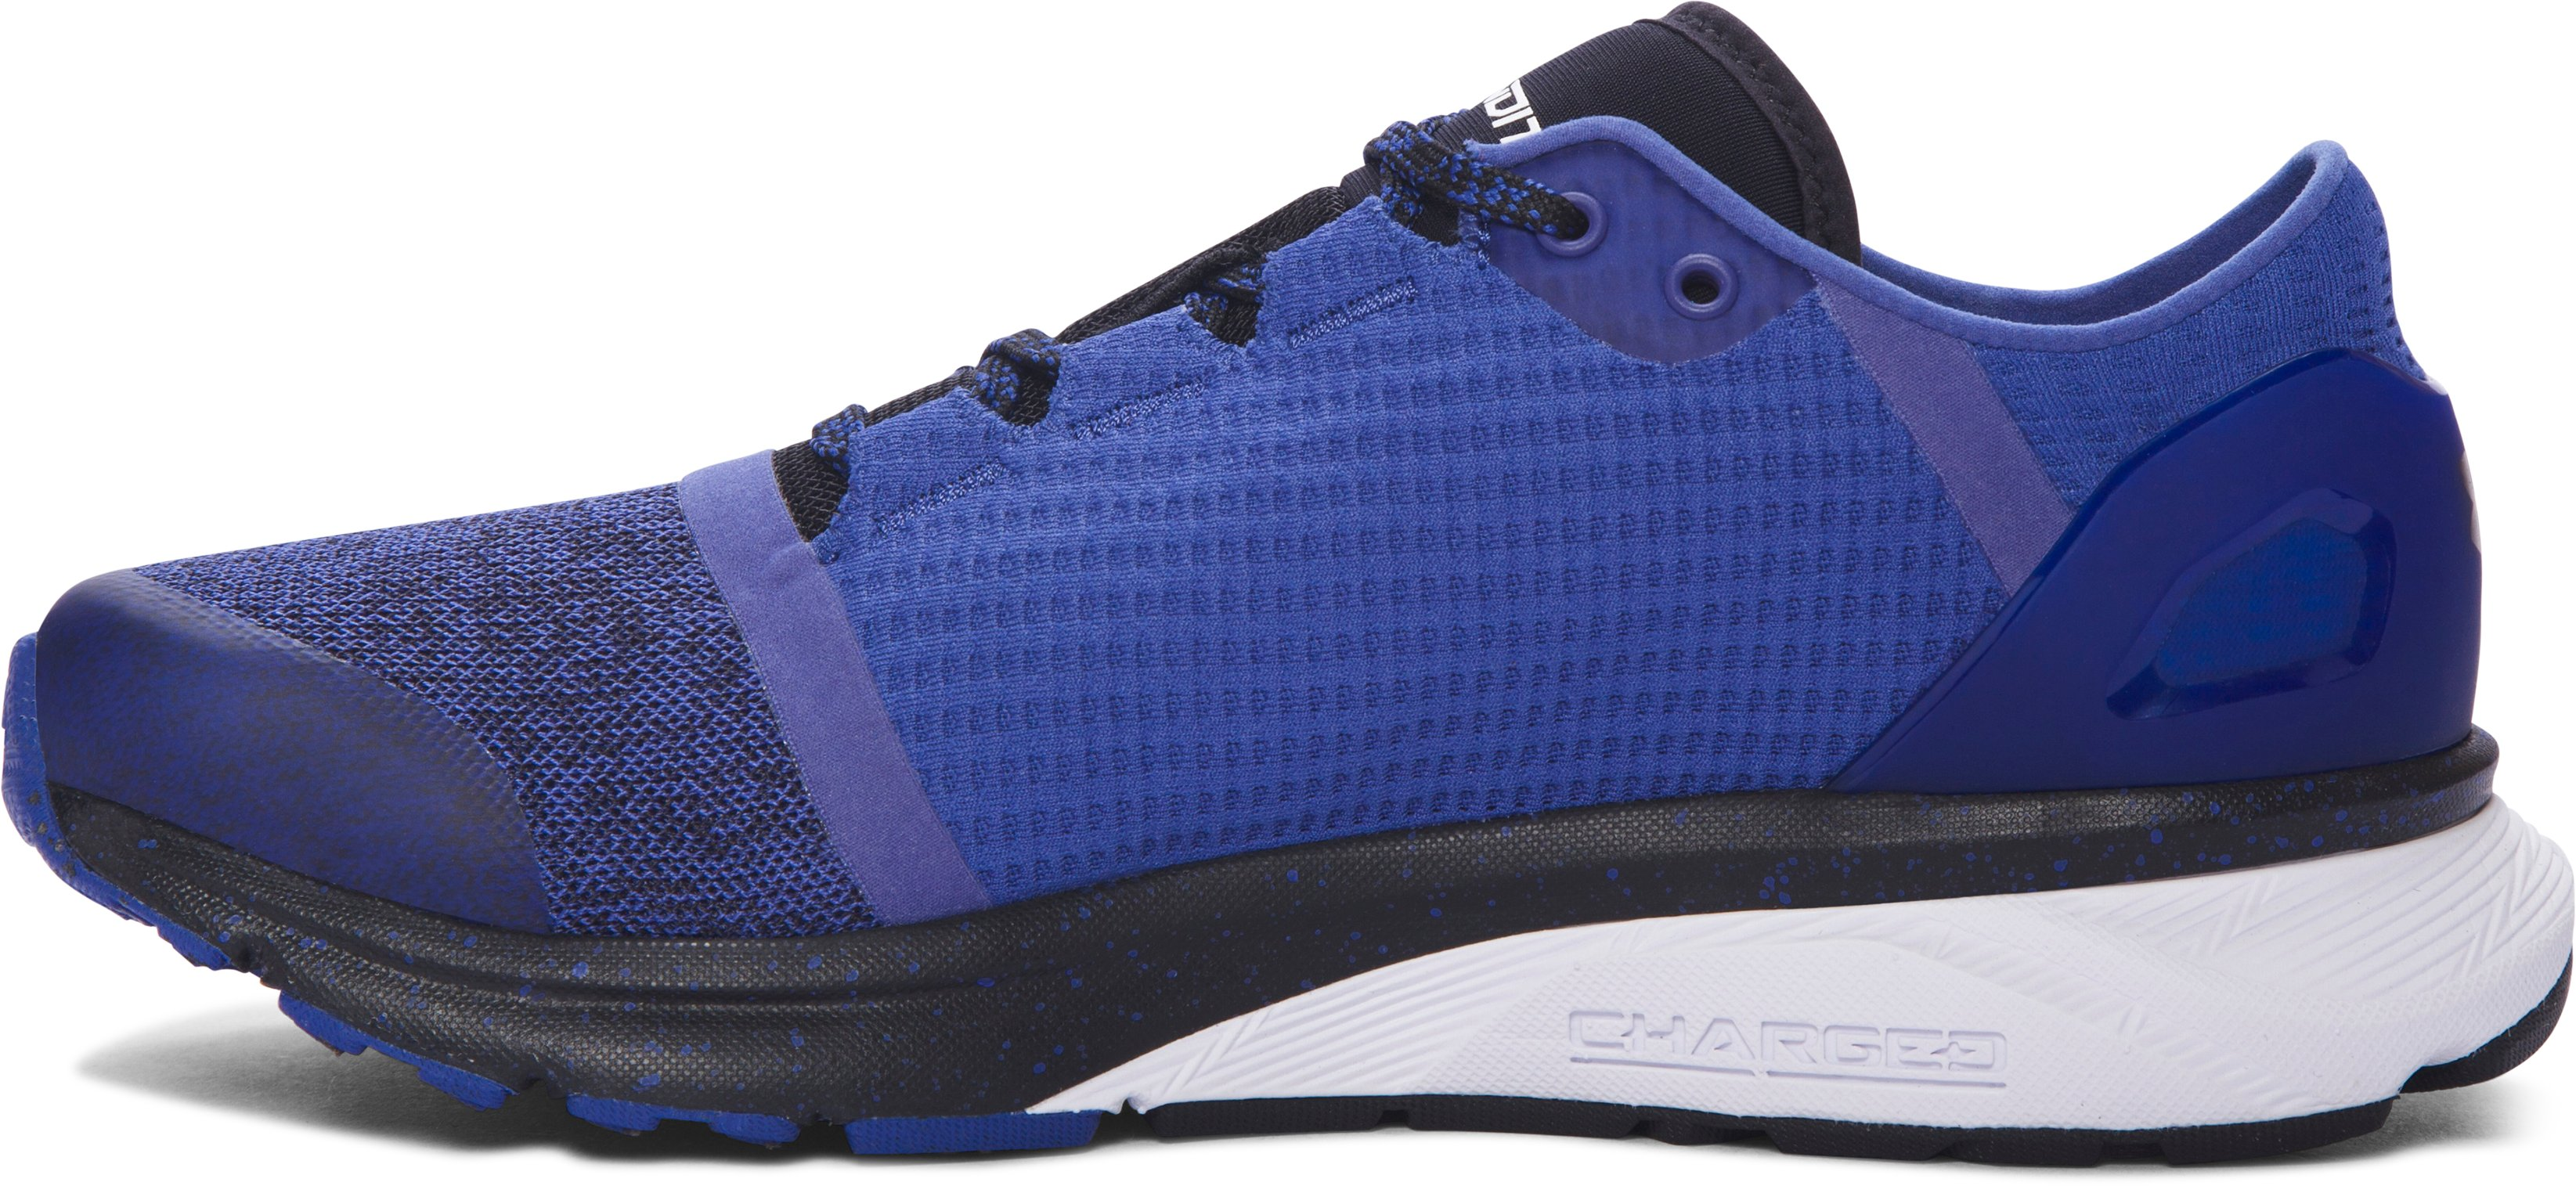 Women's UA Charged Bandit 2 Running Shoes, DEEP PERIWINKLE